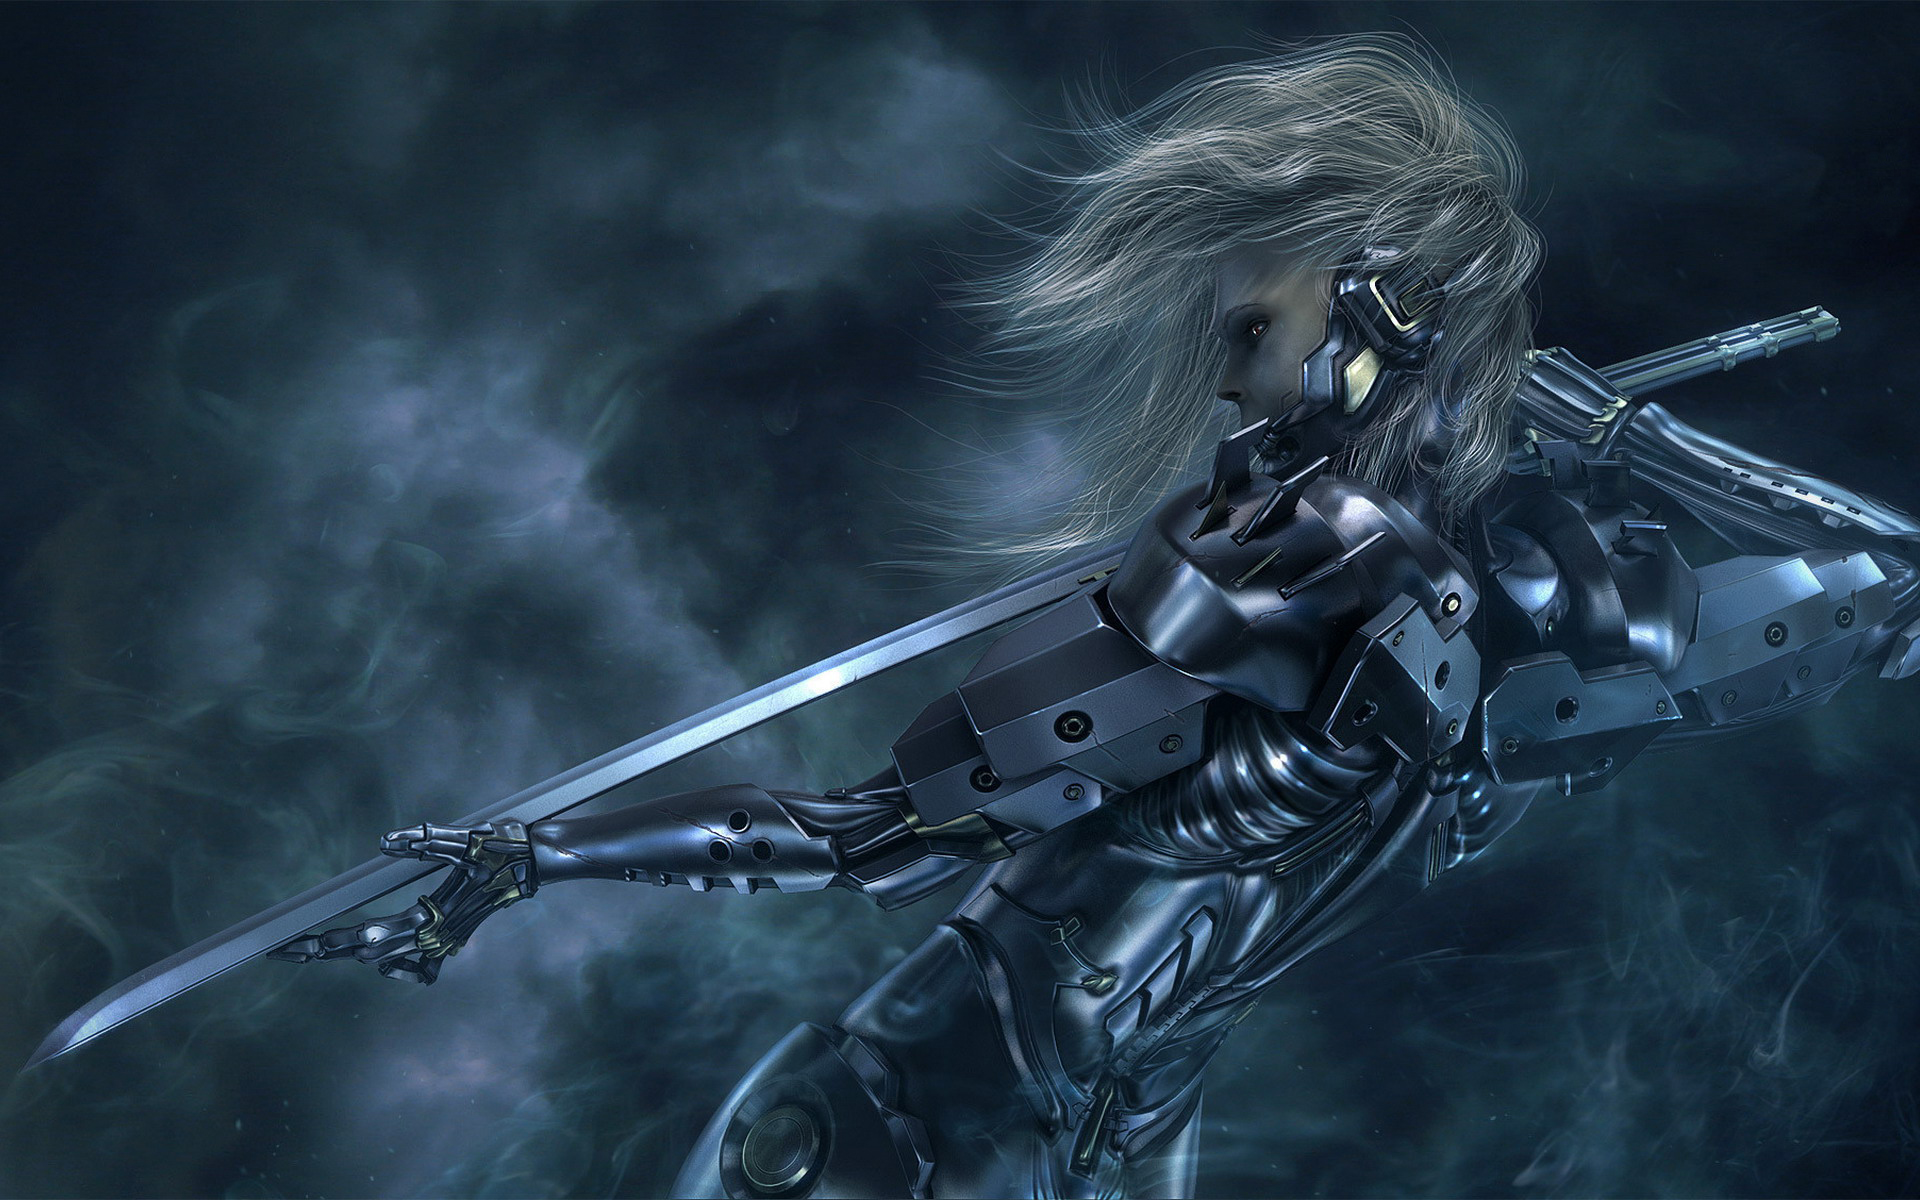 42 Hd Raiden Wallpaper On Wallpapersafari: Metal Gear Solid Wallpapers, Pictures, Images